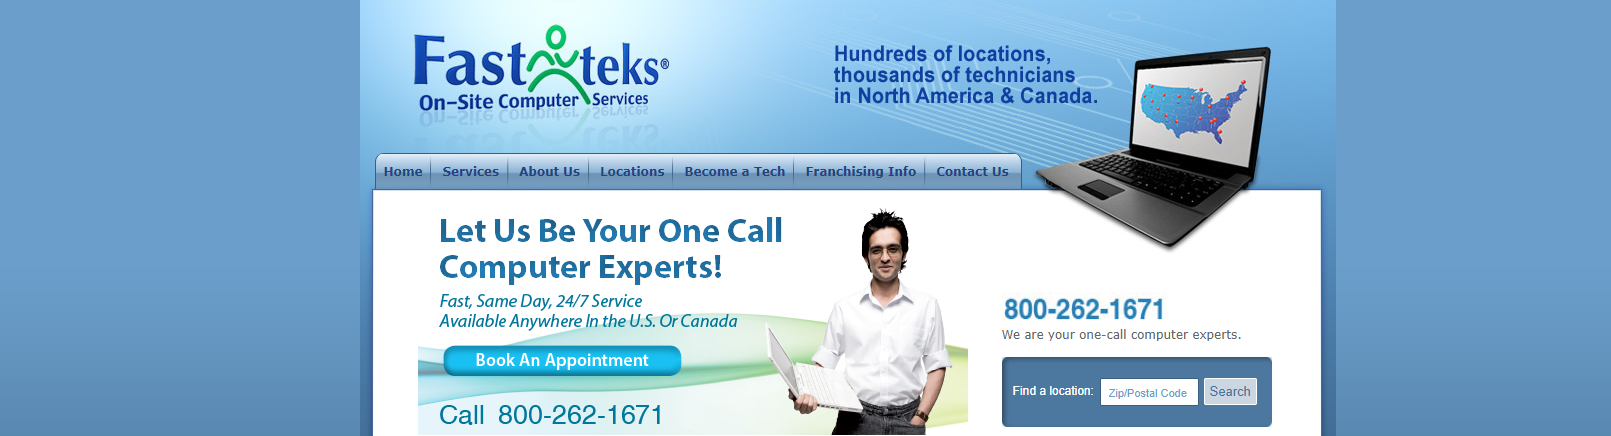 Fast-teks on-site computer services